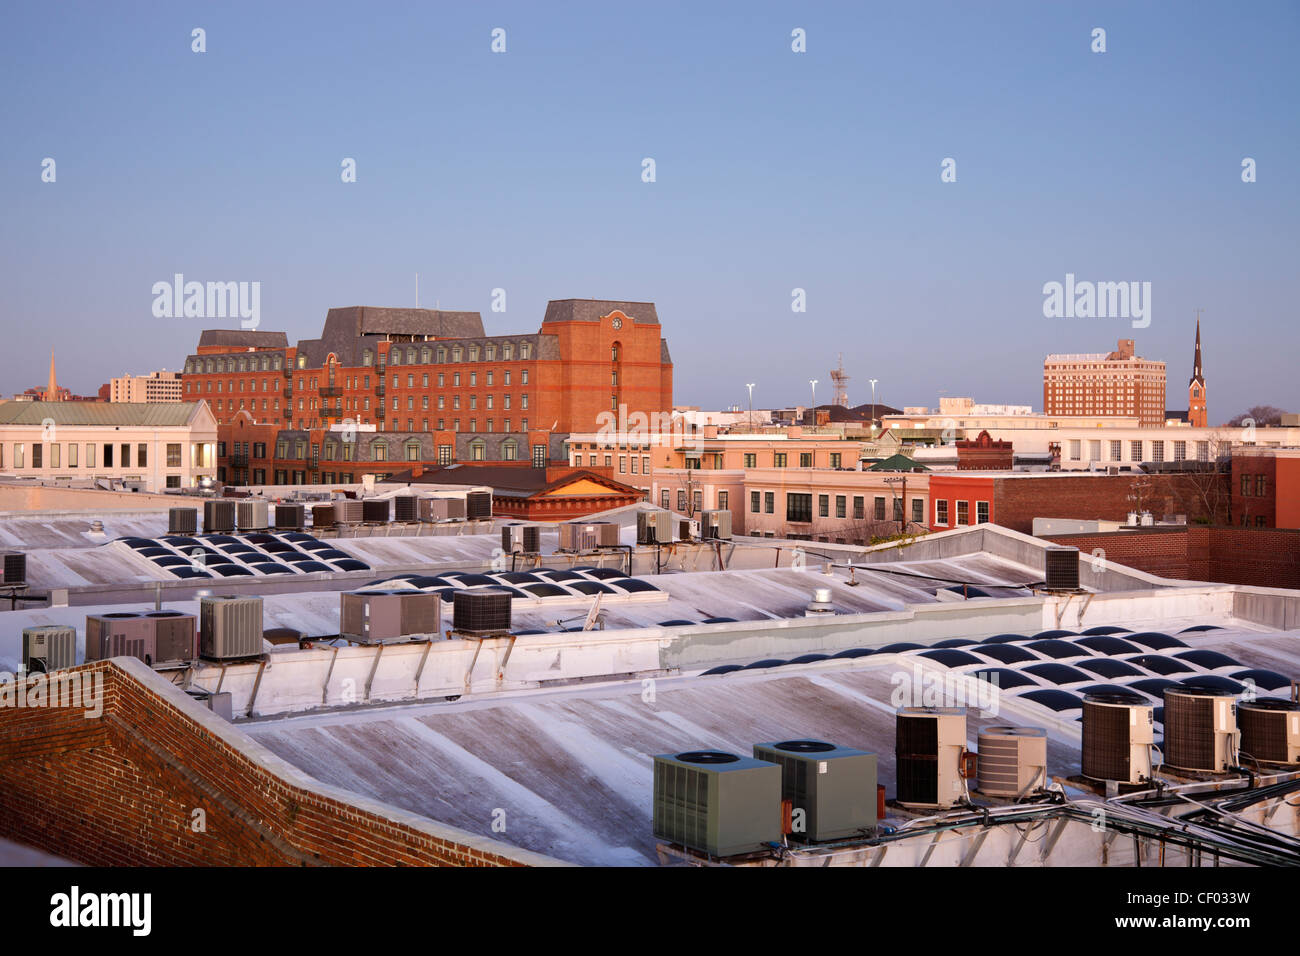 Early morning in Charleston, SC - seen from the roof - Stock Image